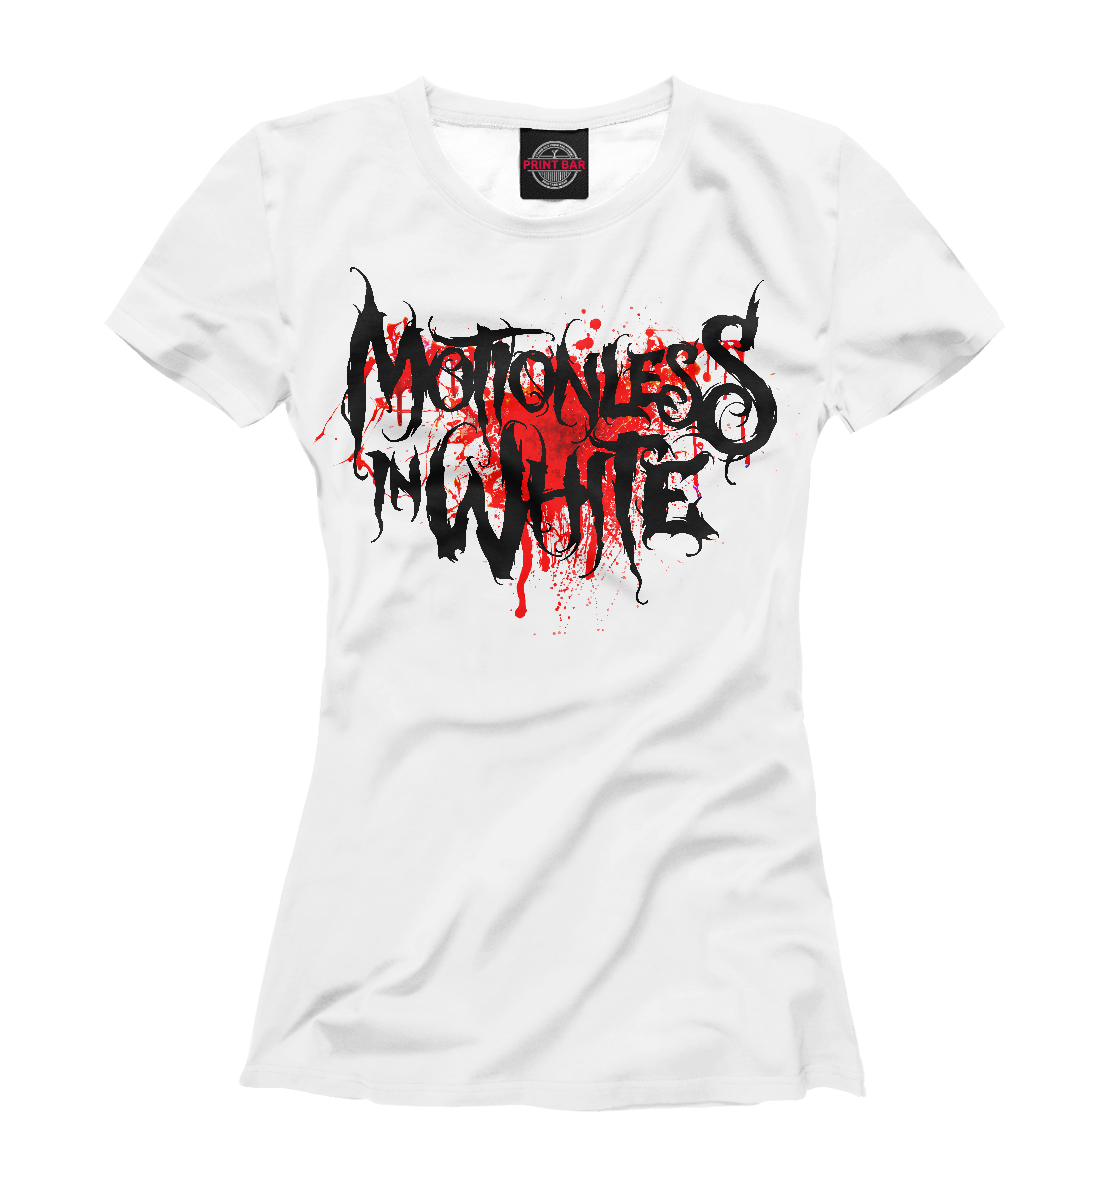 Купить Motionless In White Blood Logo, Printbar, Футболки, MZK-411447-fut-1